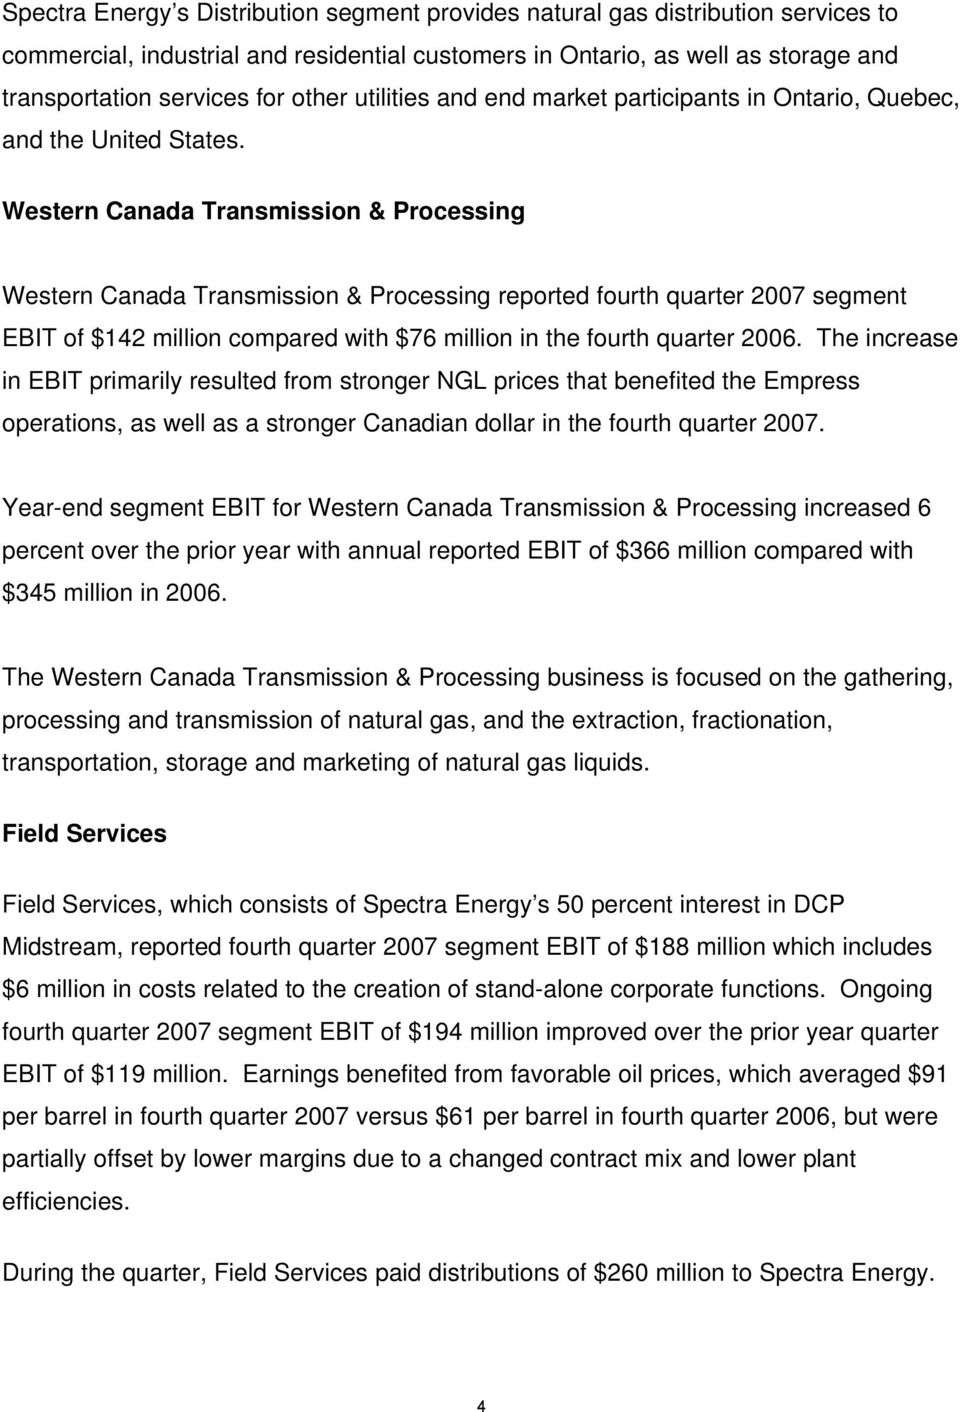 Western Canada Transmission & Processing Western Canada Transmission & Processing reported fourth quarter 2007 segment EBIT of $142 million compared with $76 million in the fourth quarter 2006.